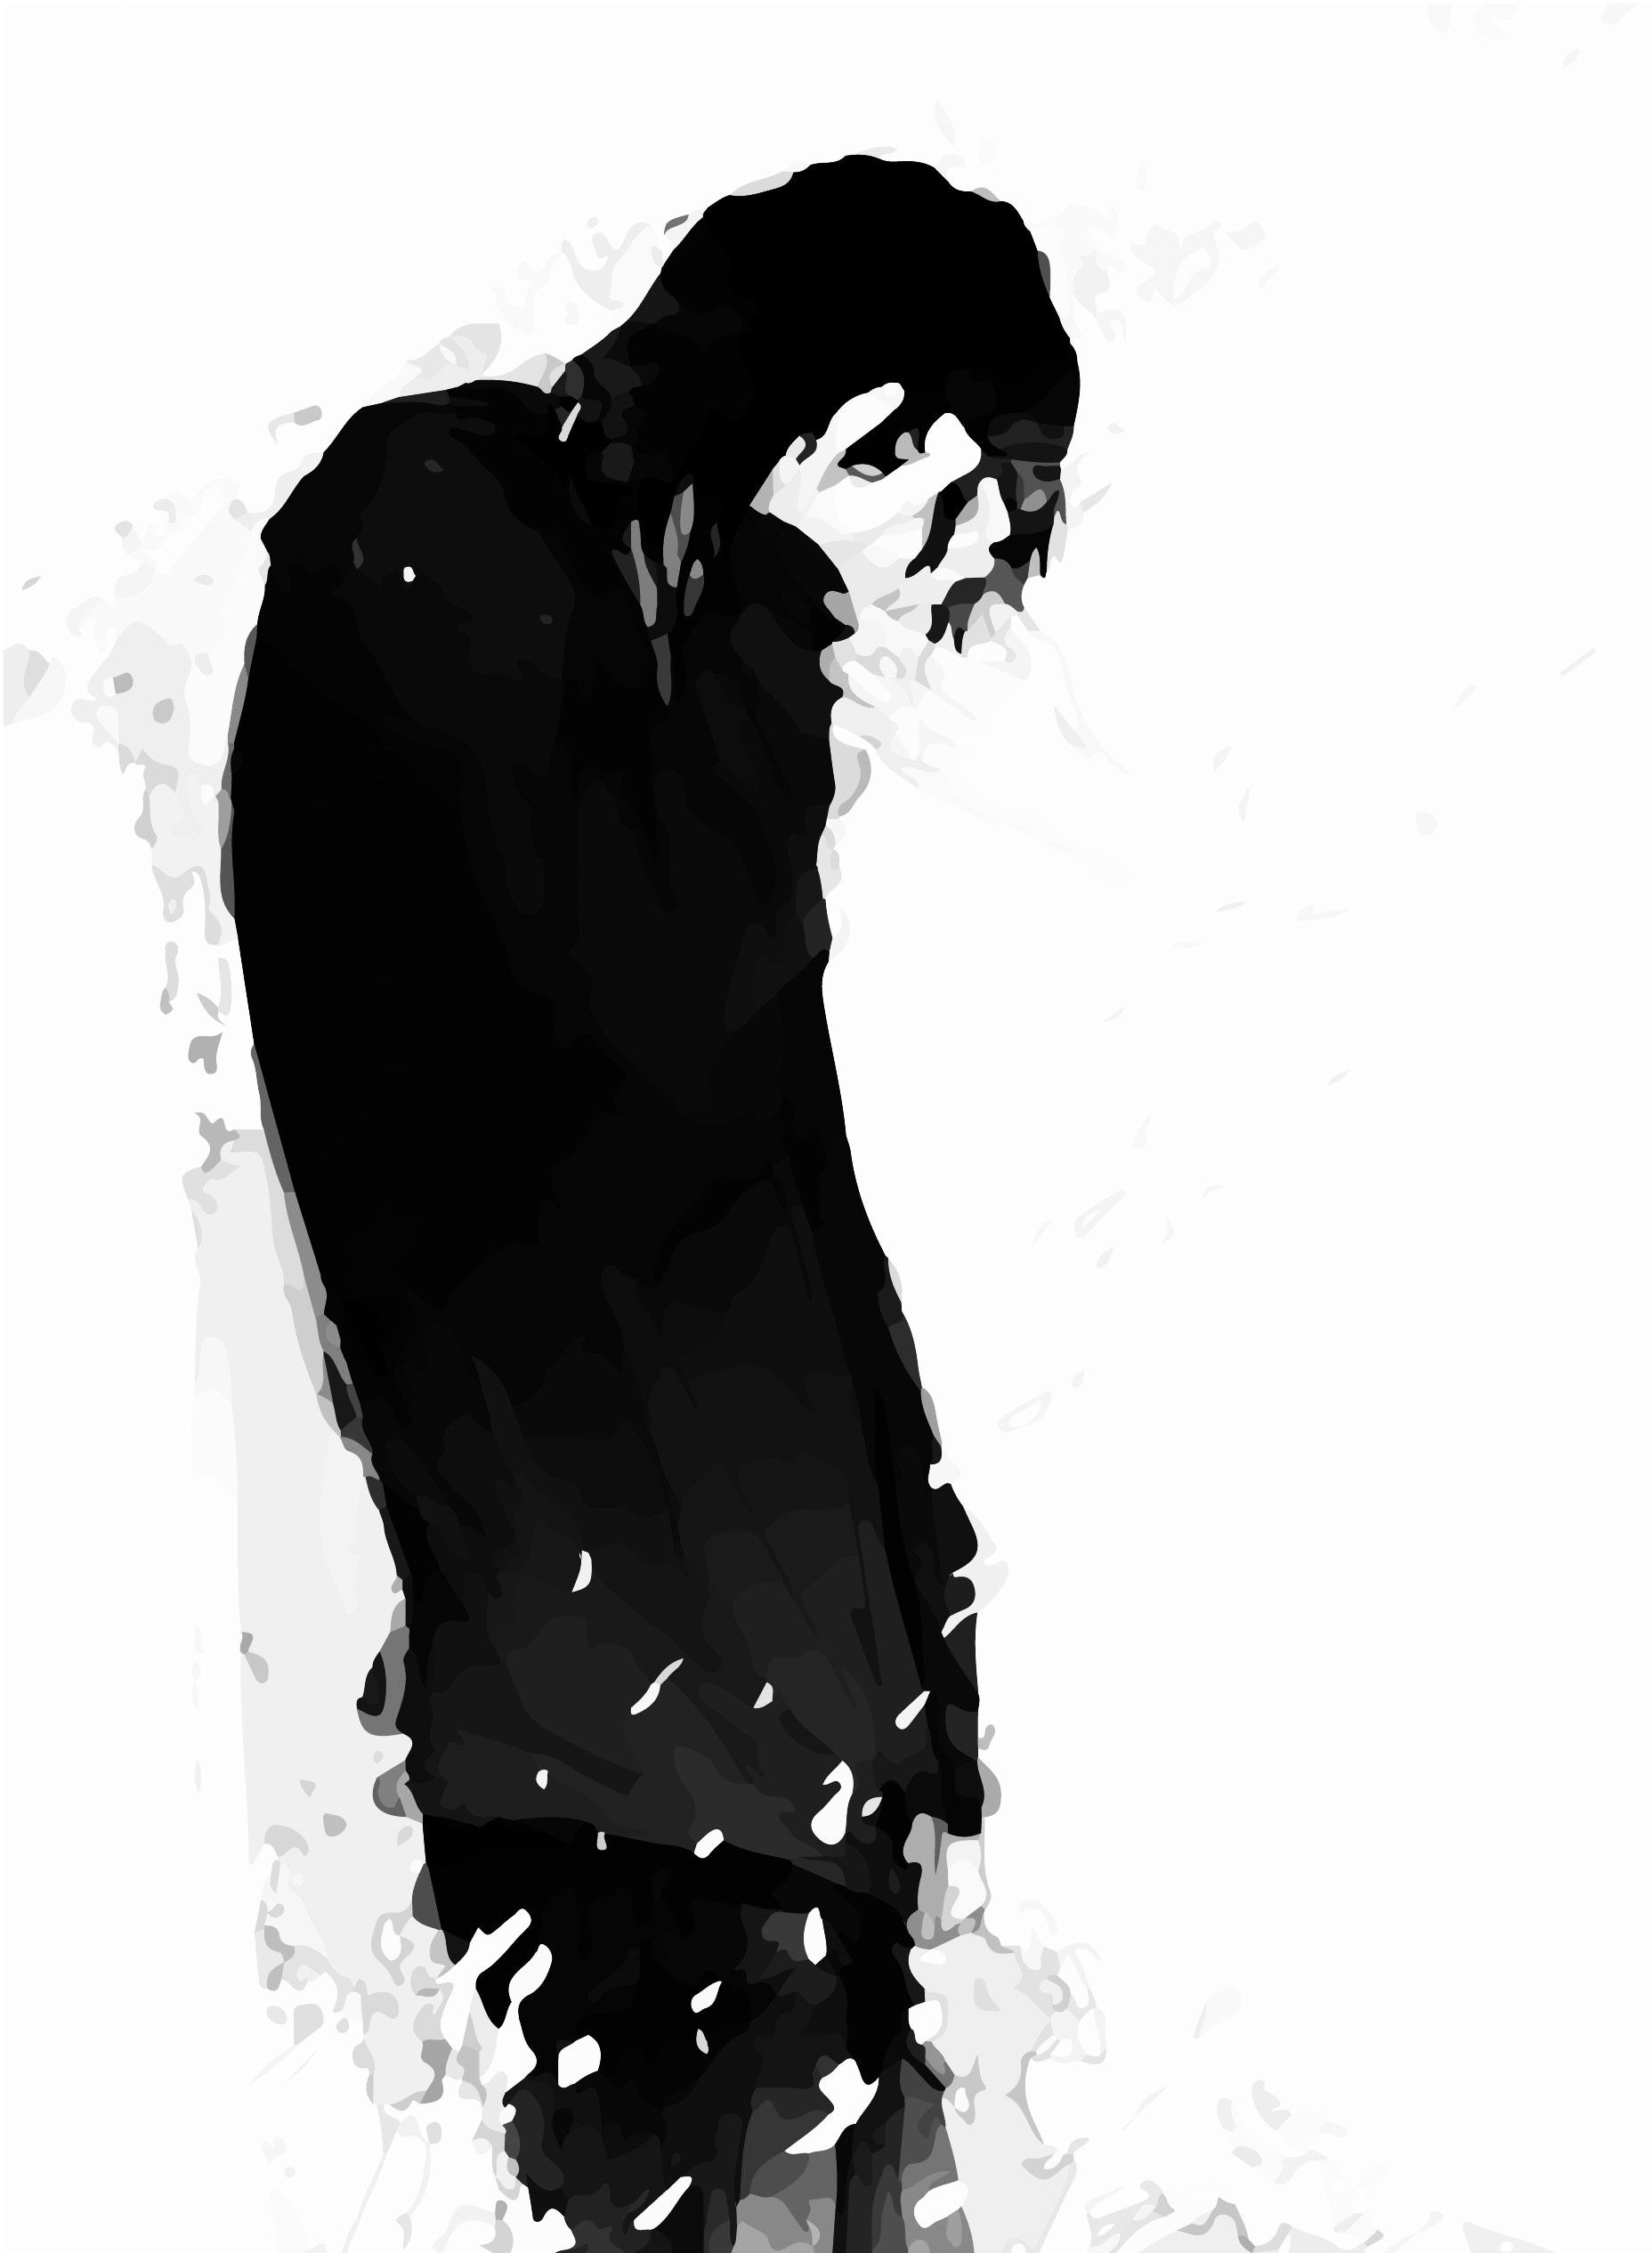 Depressed Anime Guy : depressed, anime, Depressed, Anime, Wallpapers, Backgrounds, WallpaperAccess